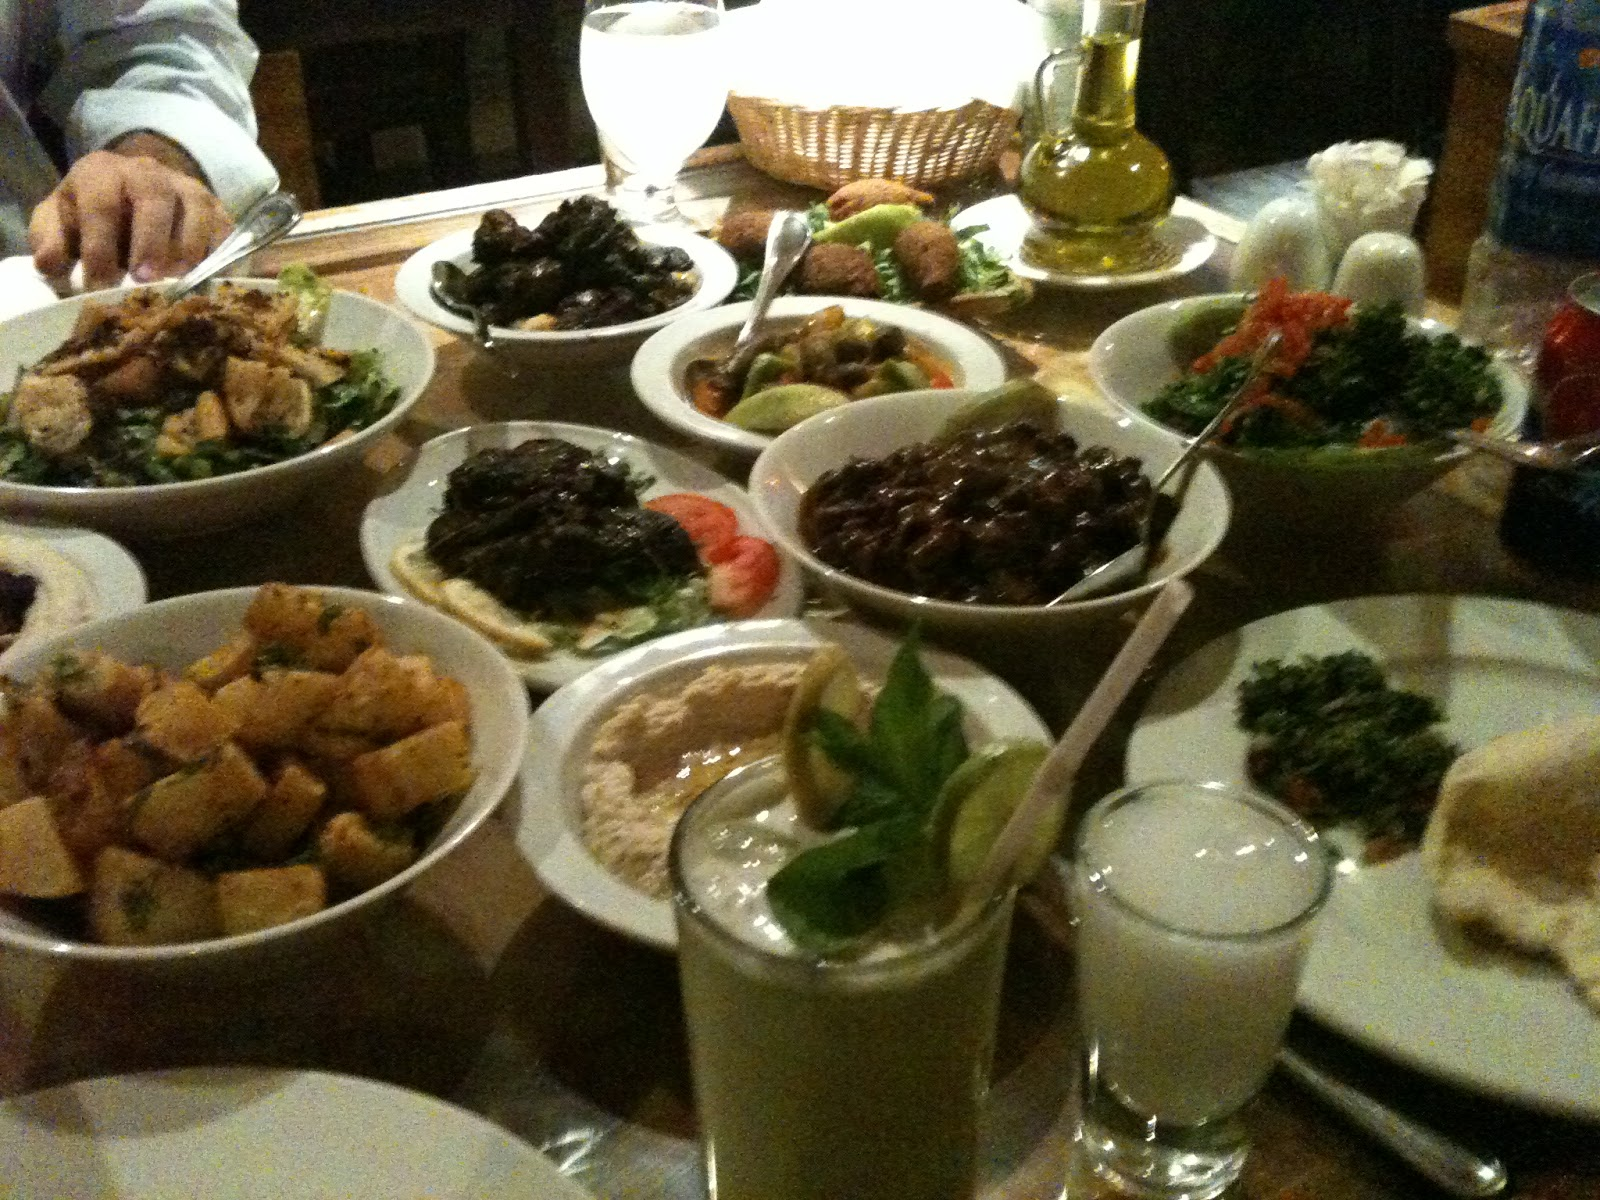 a report on egyptian food The new food safety agency in egypt is now a reality after the egyptian parliament approved law number 1/2017 establishing the national food safety authority (nfsa) on january 2, 2017.